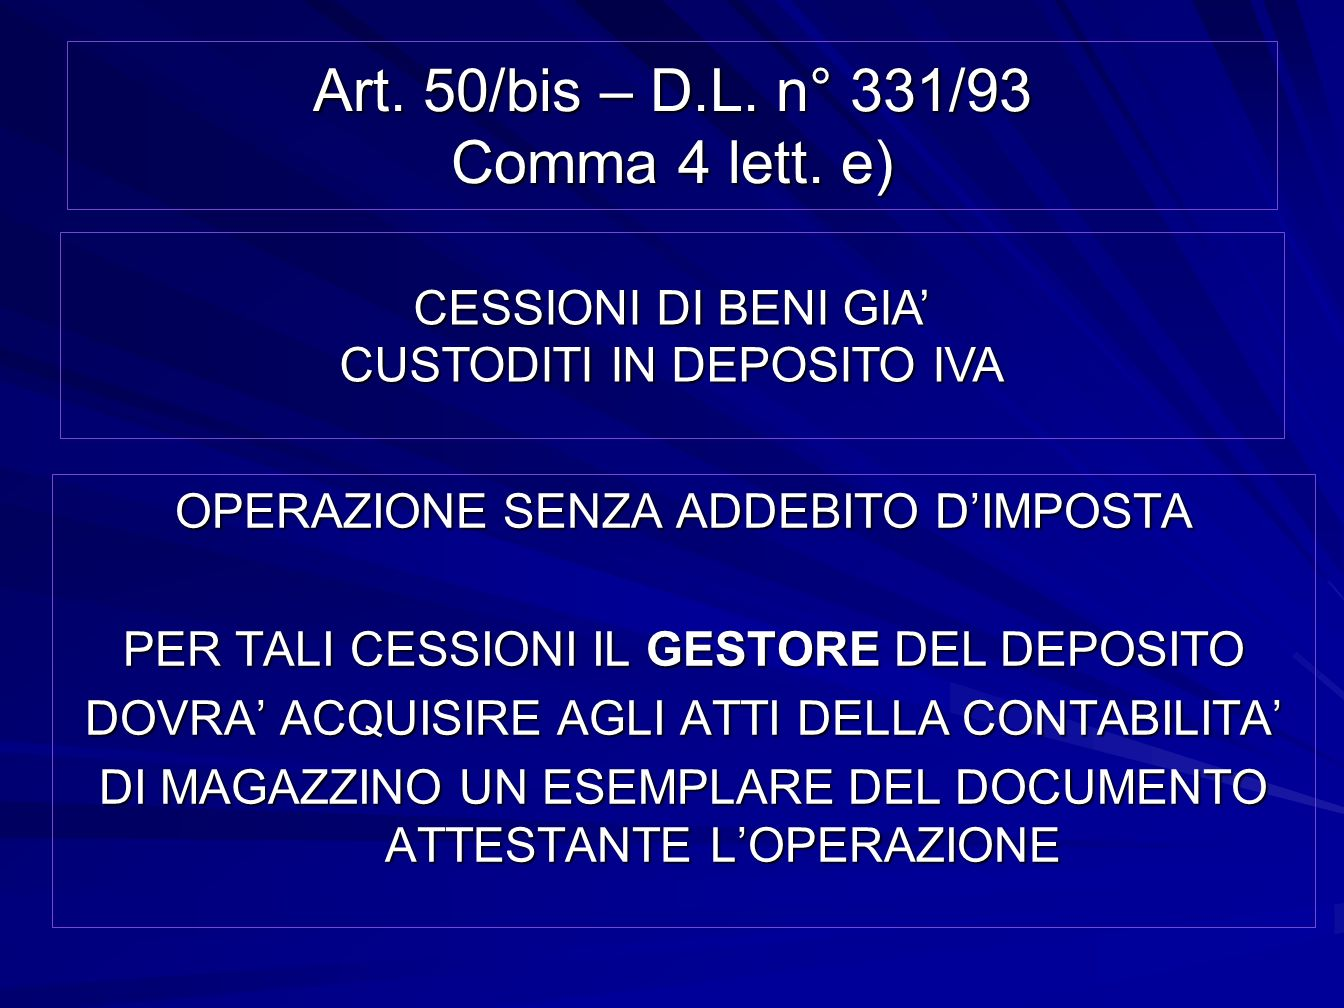 Art. 50/bis – D.L. n° 331/93 Comma 4 lett. e)